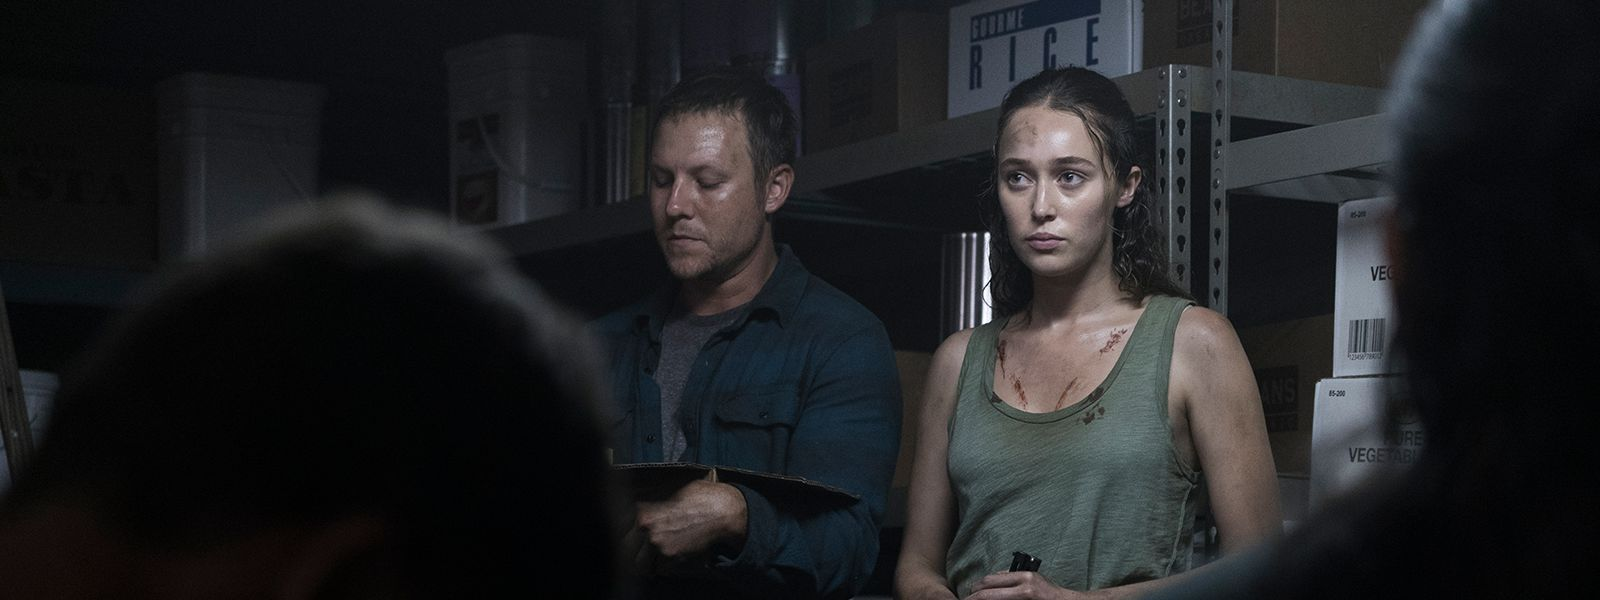 fear-the-walking-dead-episode-313-alicia-debnam-carey-post-800×600